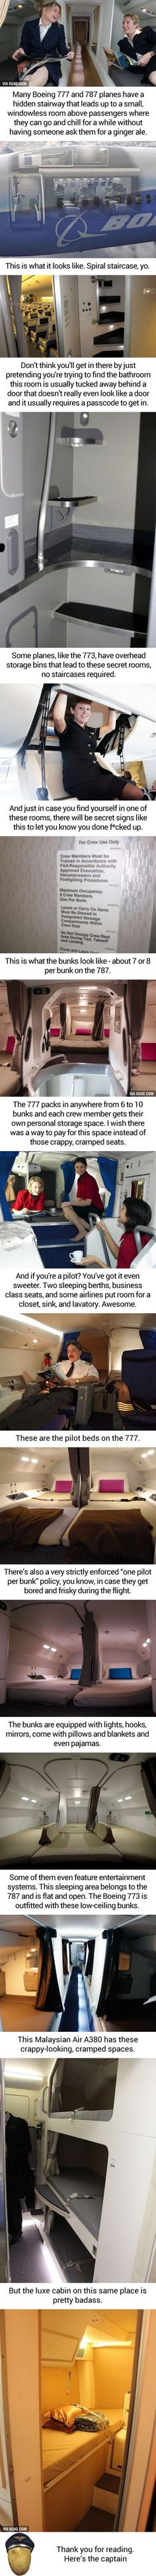 These Are The Secret Rooms Pilots And Flight Attendants Sleep In During Long Flights